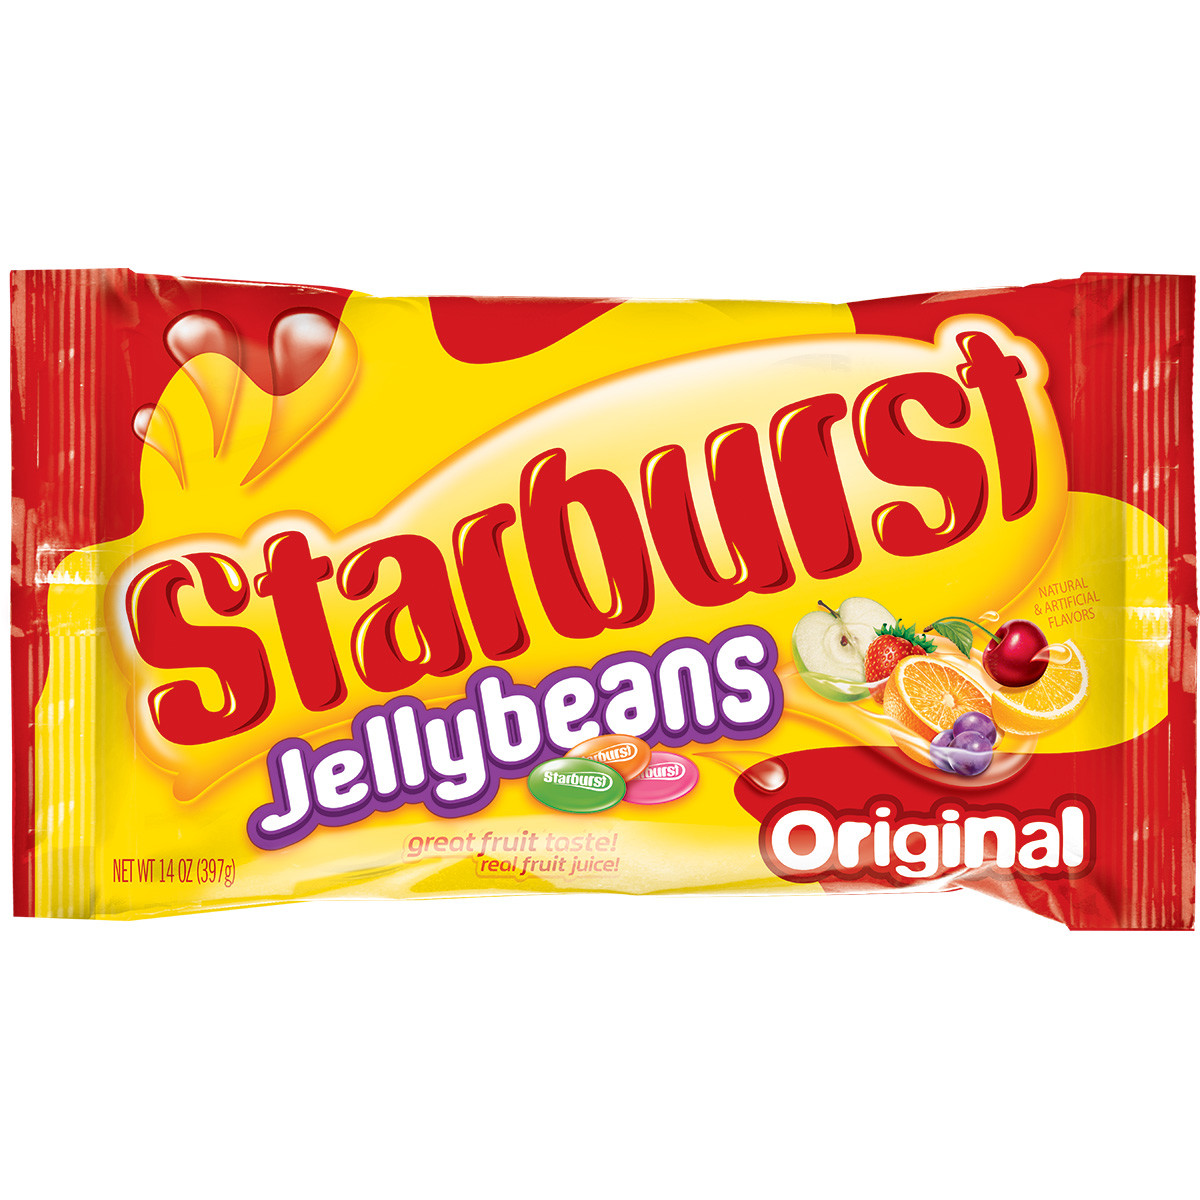 Starburst Original Jellybeans Candy Bag, 14 ounce